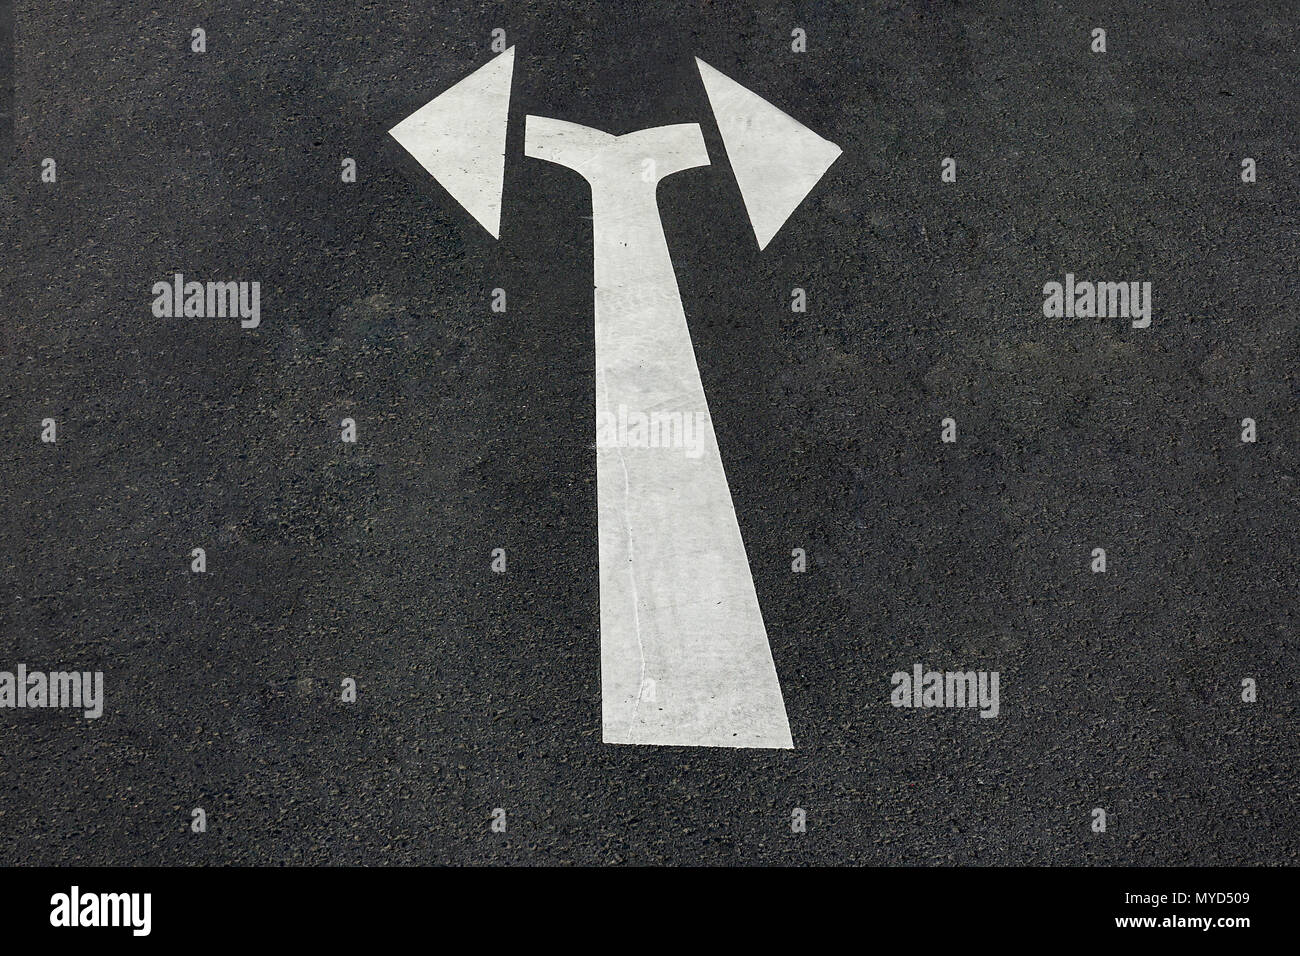 Double pointing arrow painted on the asphalt on a street with left and right pointing arrows indicating a turn conceptual of choices, opportunities an Stock Photo